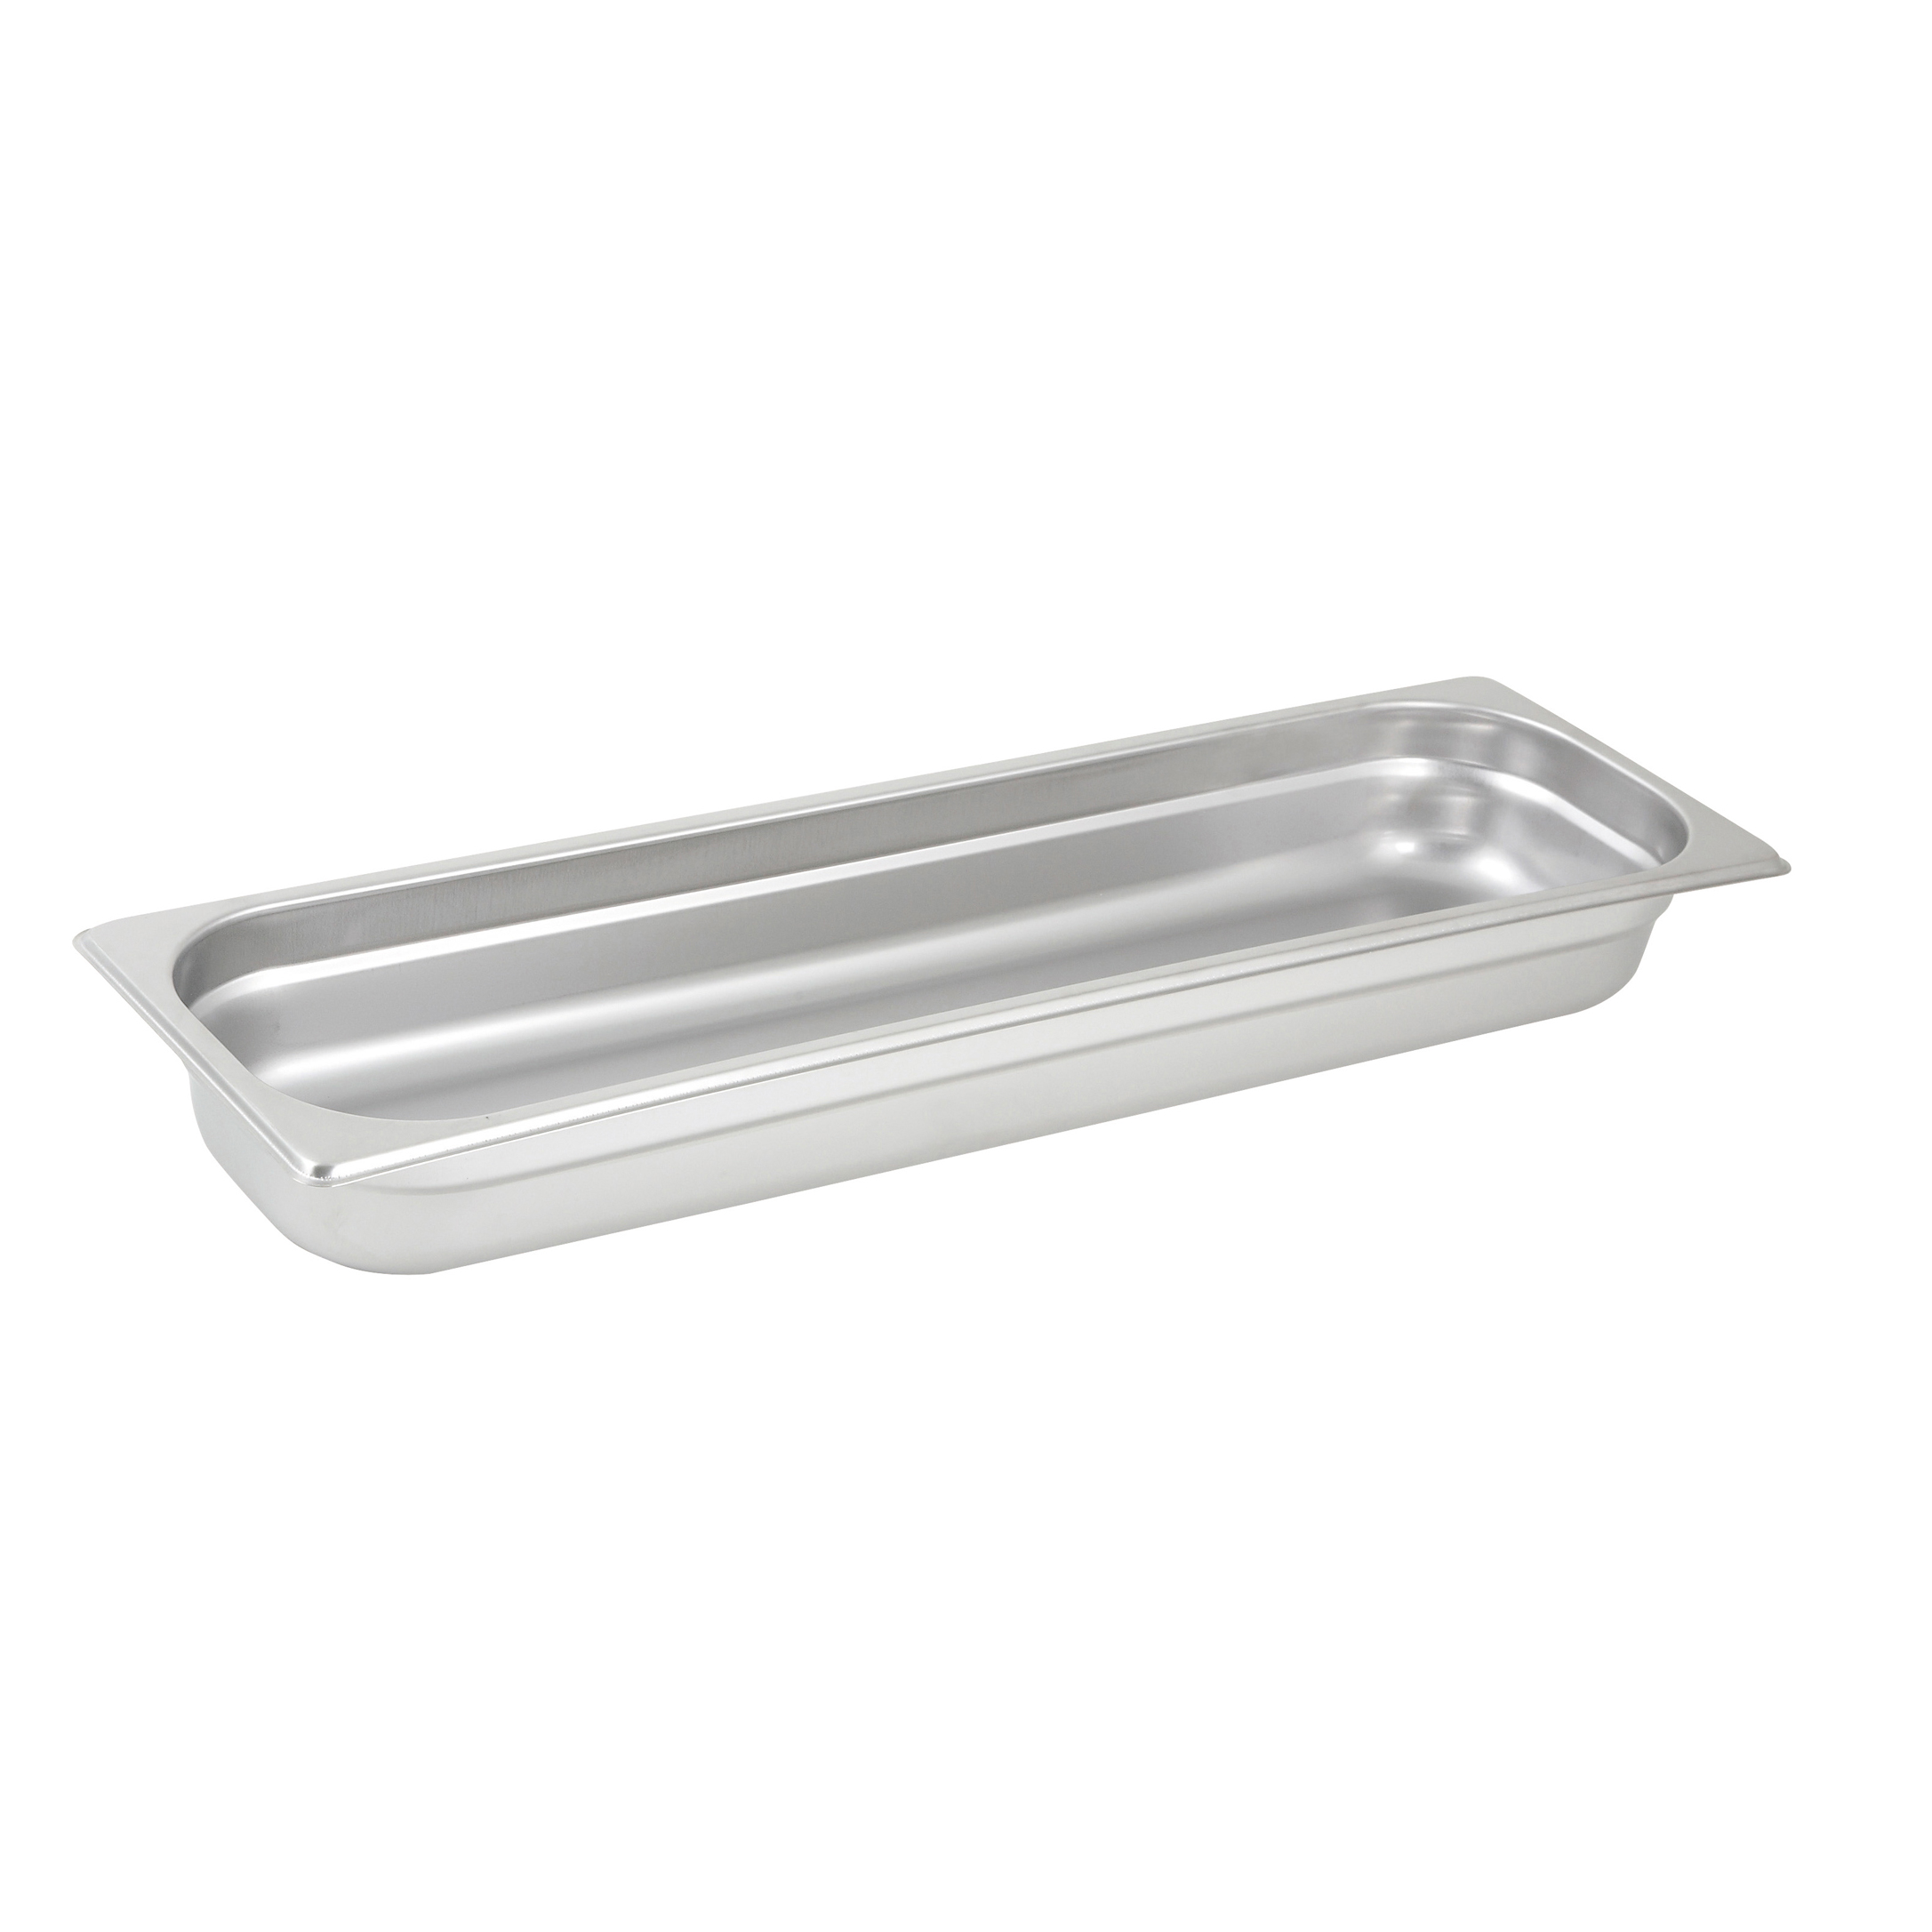 Winco SPJL-2HL steam table pan, stainless steel